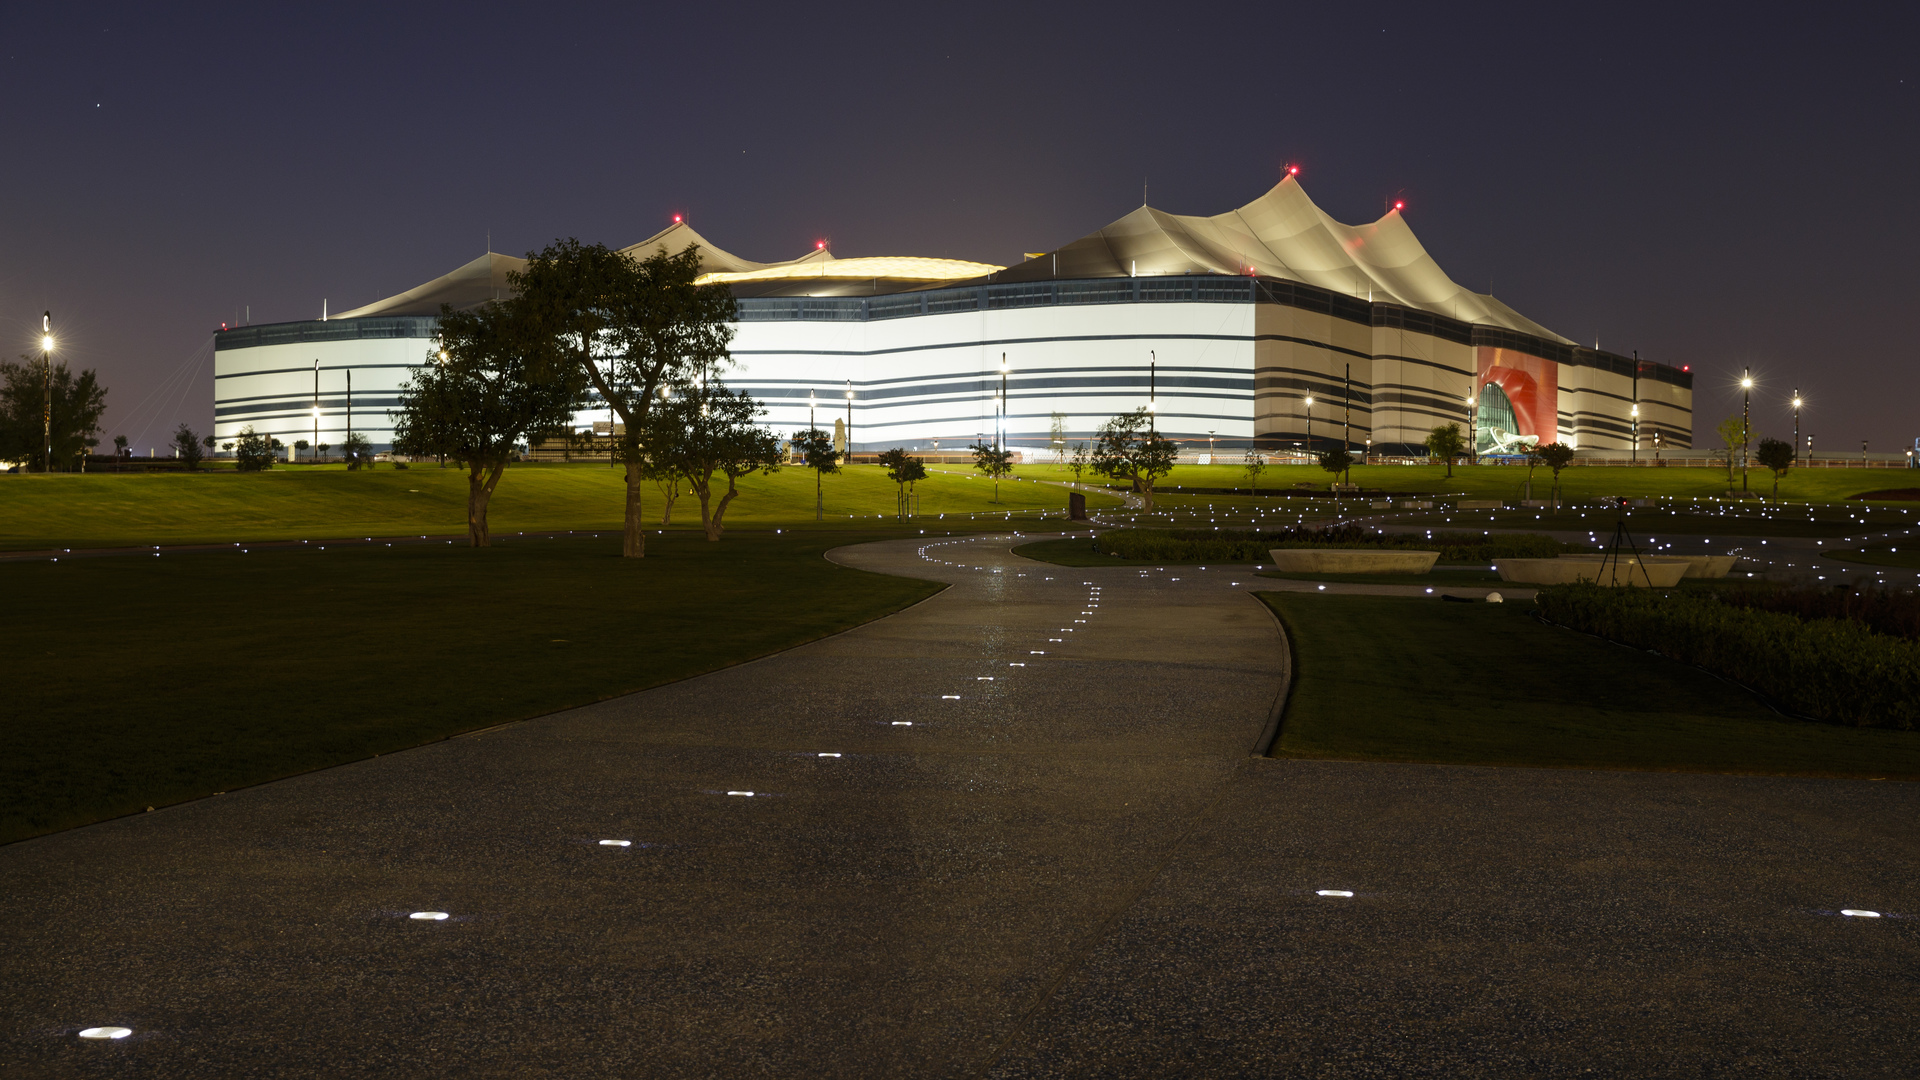 A view of Al Bayt Stadium, lit up at night.